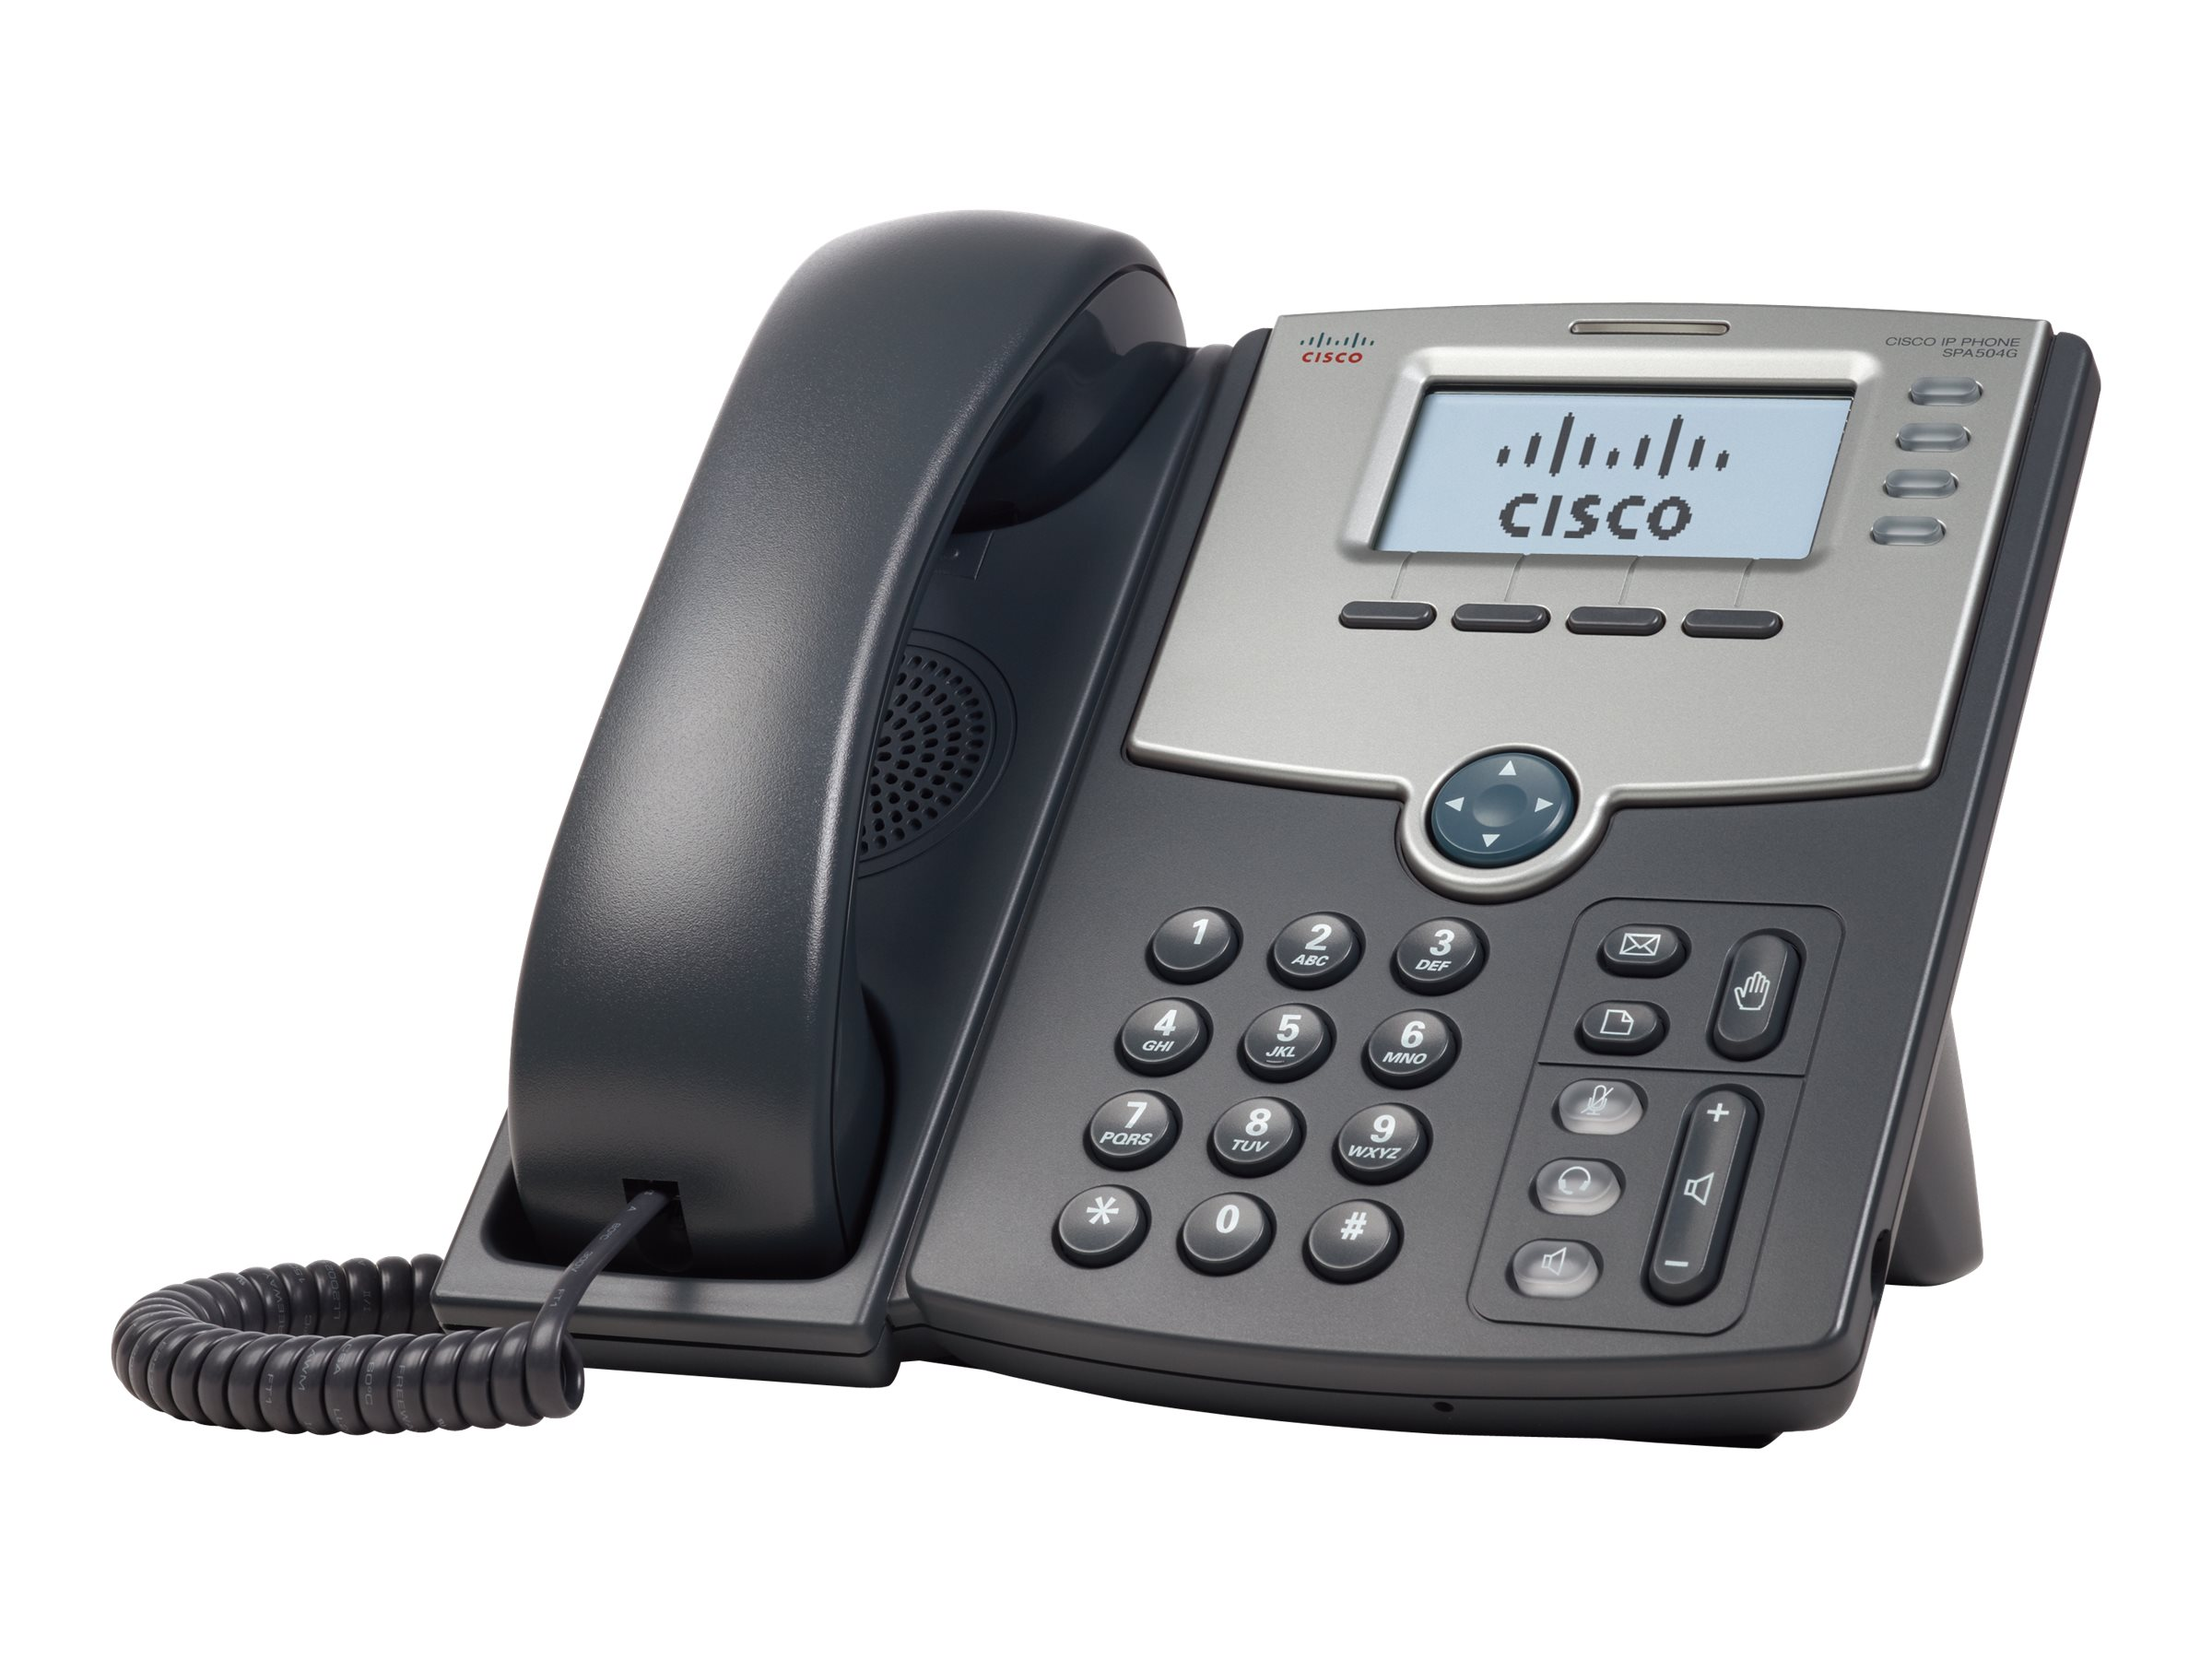 Cisco Small Business SPA 504G - VoIP-Telefon - SIP, SIP v2, SPCP - mehrere Leitungen - Silber, Dunkelgrau - für Small Business P